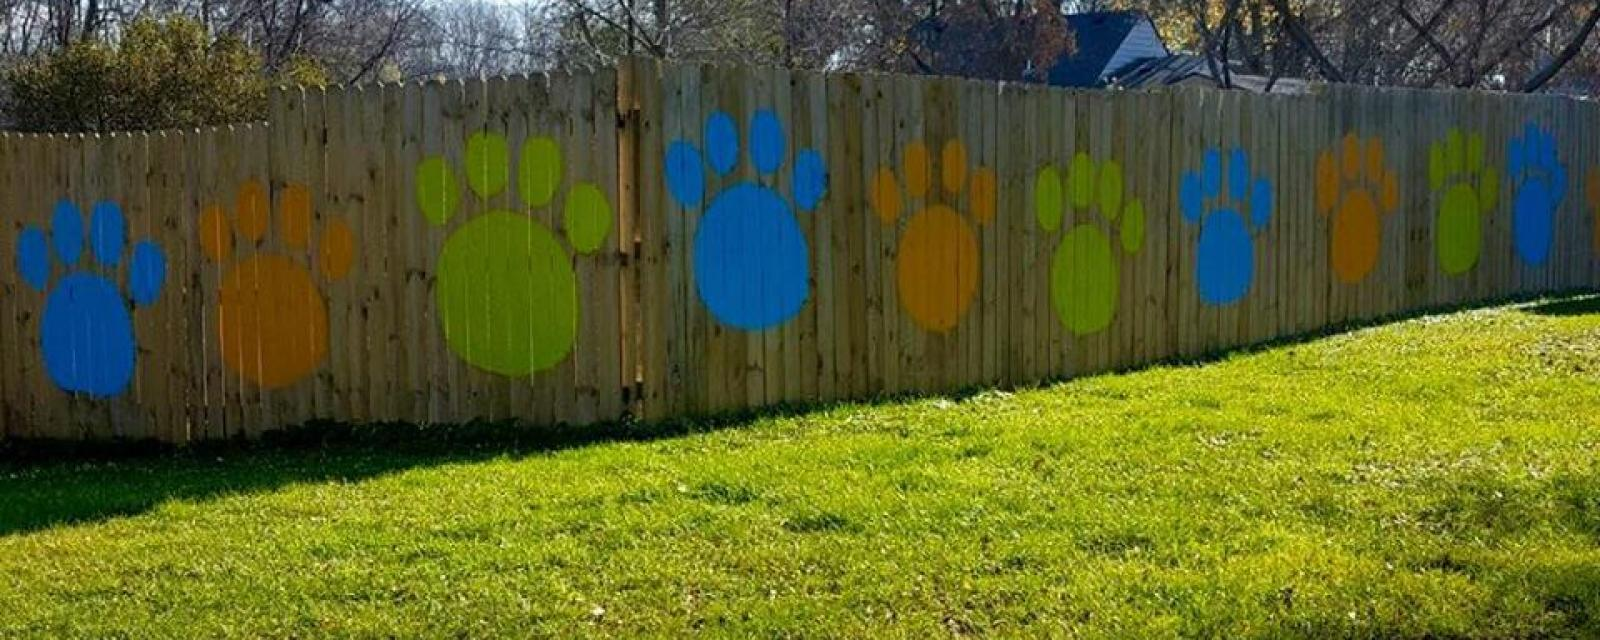 Doggy Day care and boarding facility fence